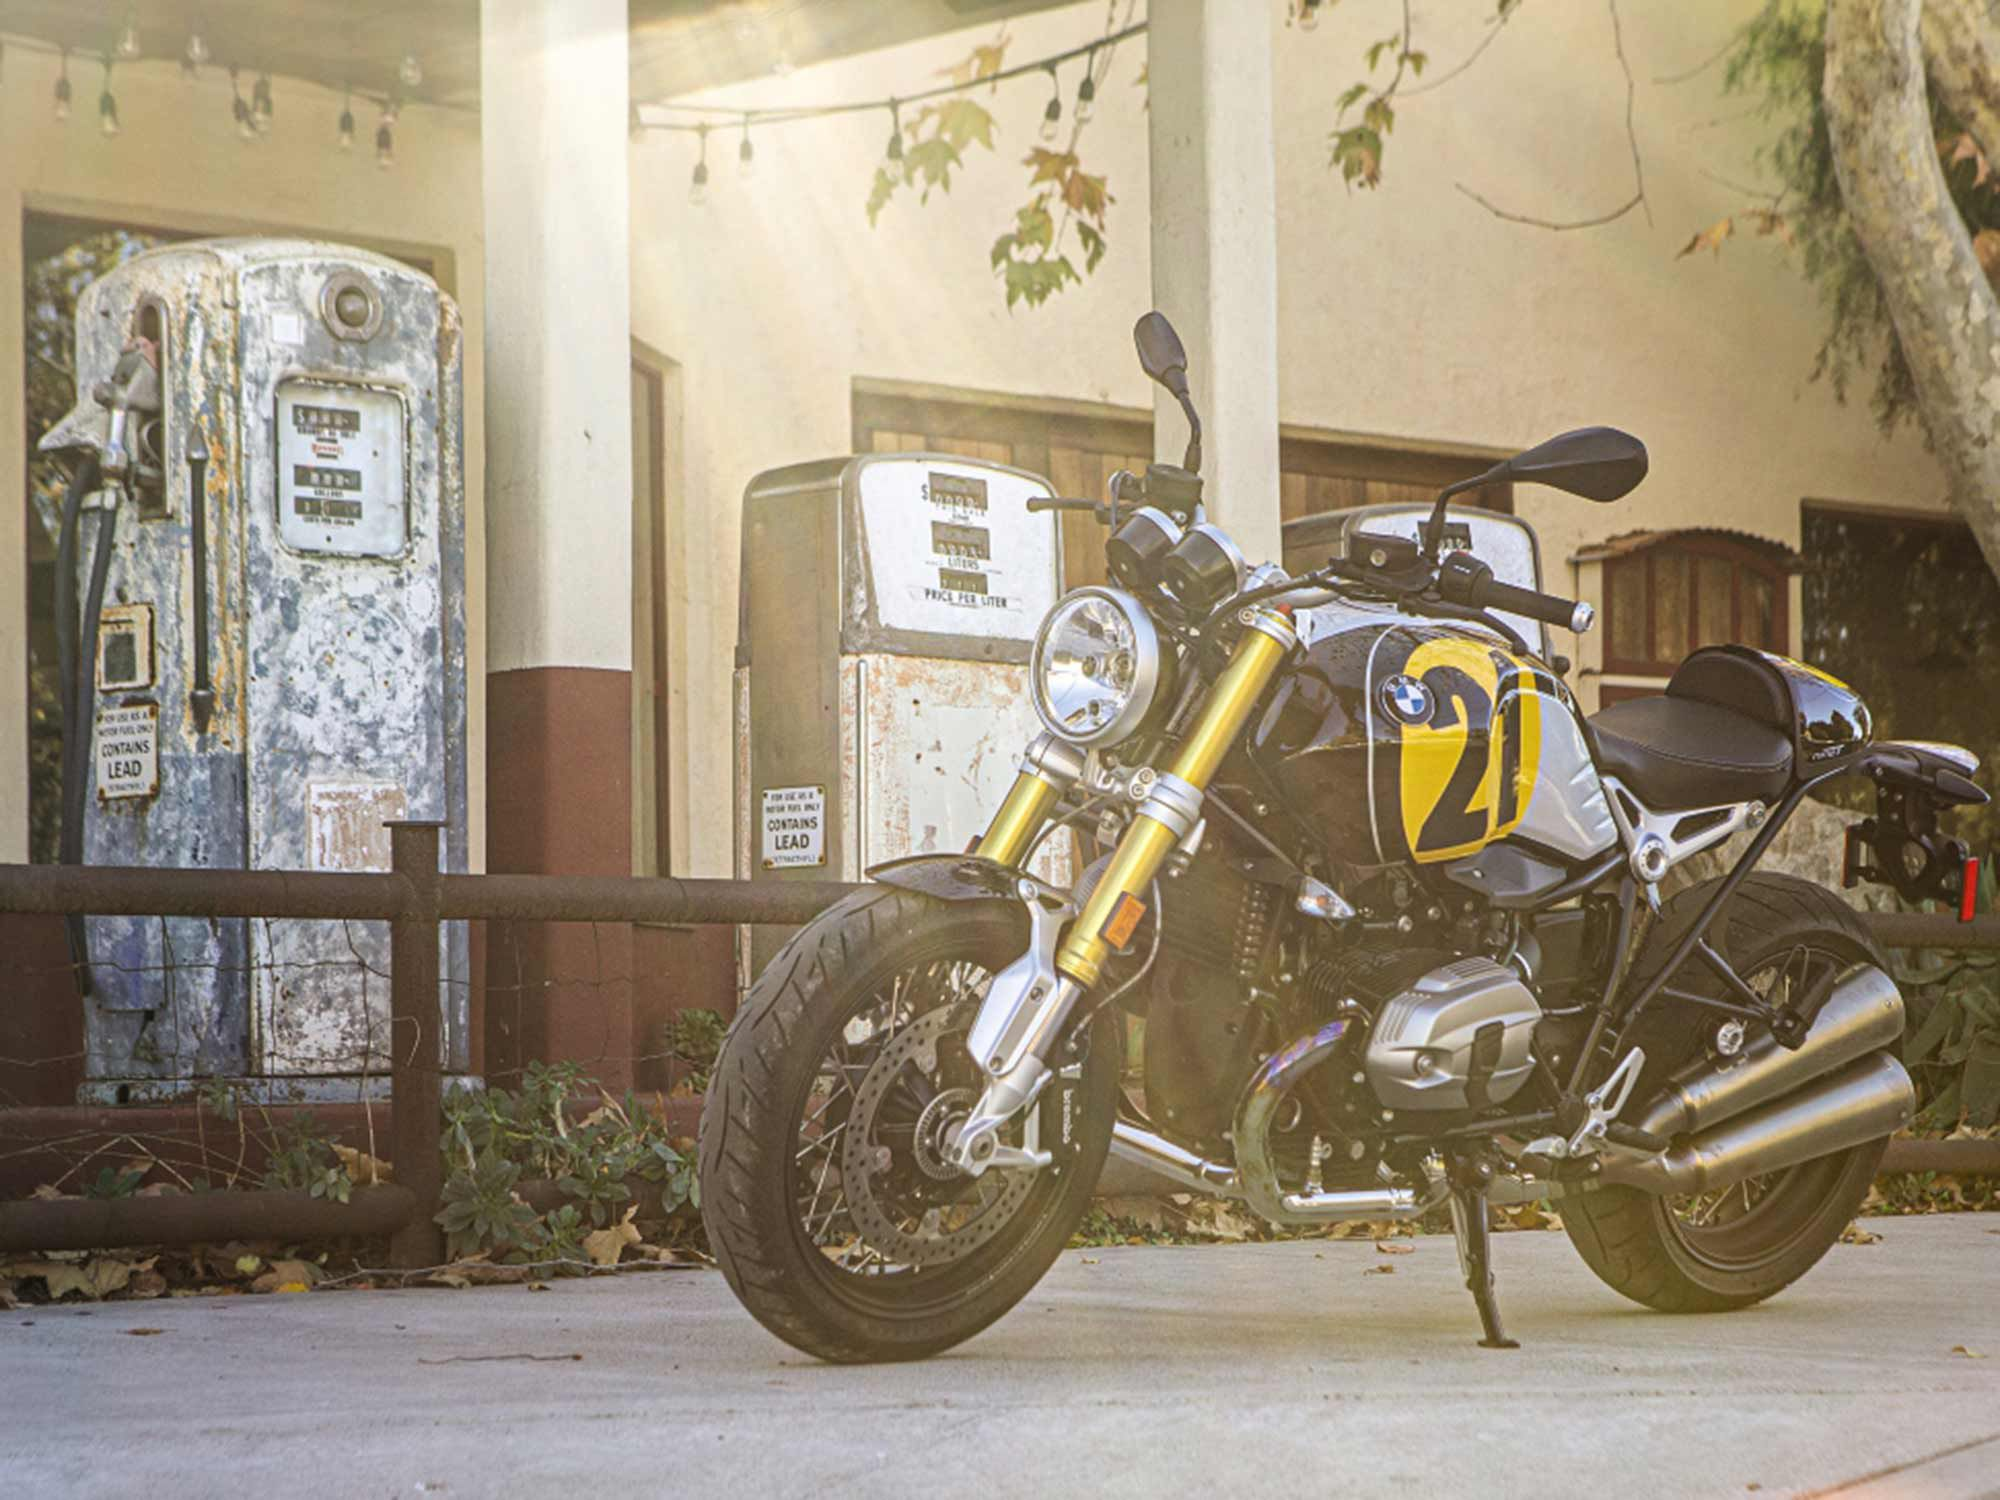 BMW R nineT, heritage, with an adjustable fork. Exhaust note is expertly tuned and soul stirring.